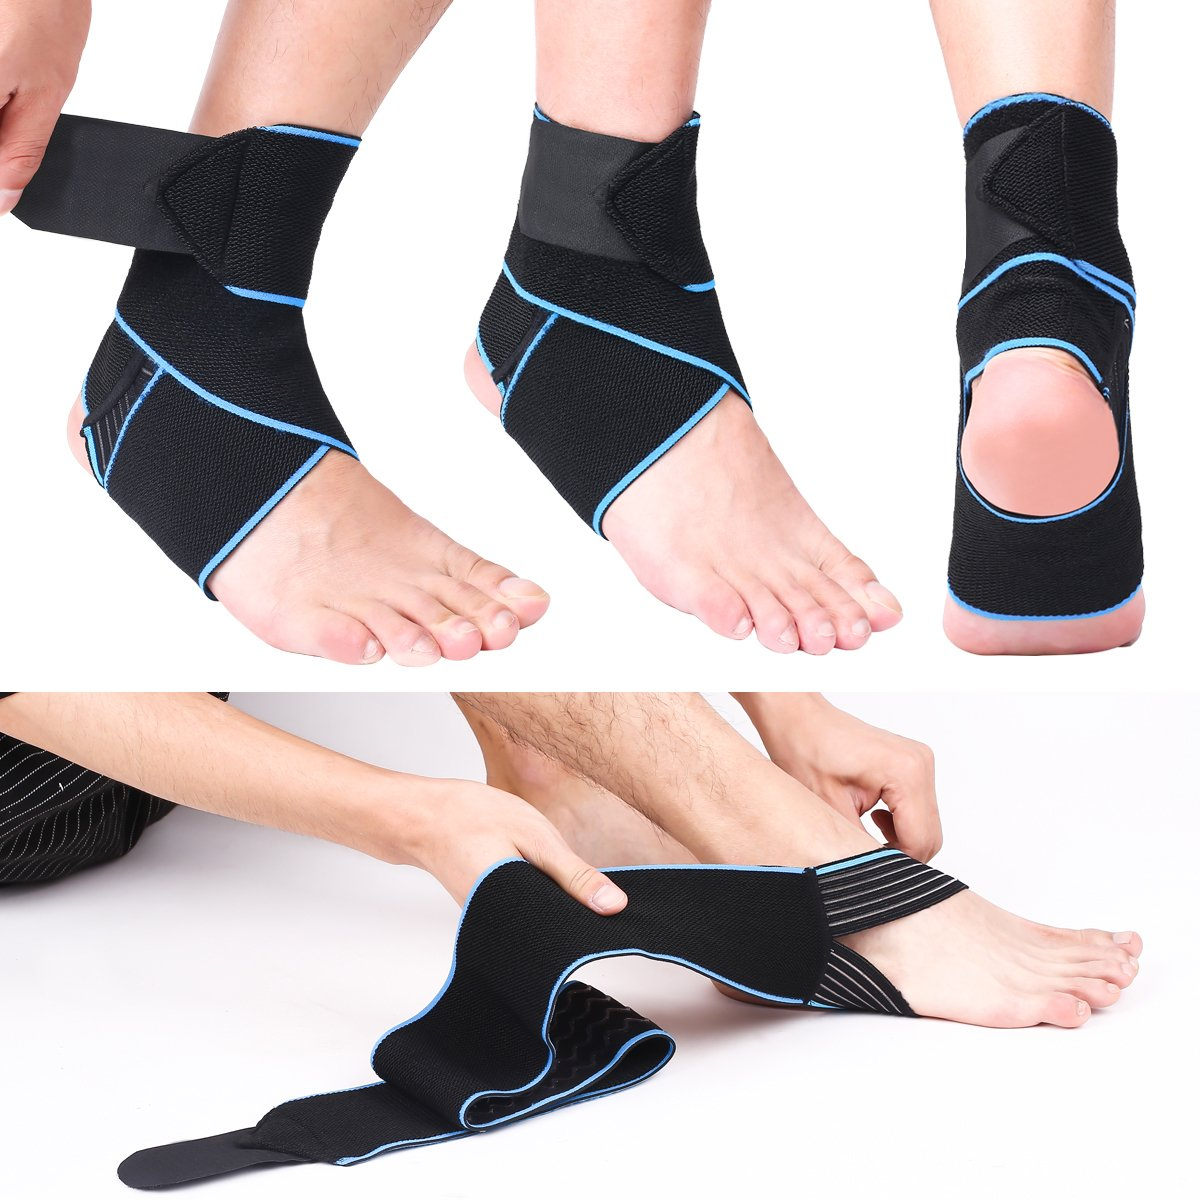 a797c374cc Giwil Ankle Support, Adjustable Ankle Brace Breathable Nylon Material Super  Elastic and Comfortable One Size Fits all, Perfect for Sports, Protects  Against ...